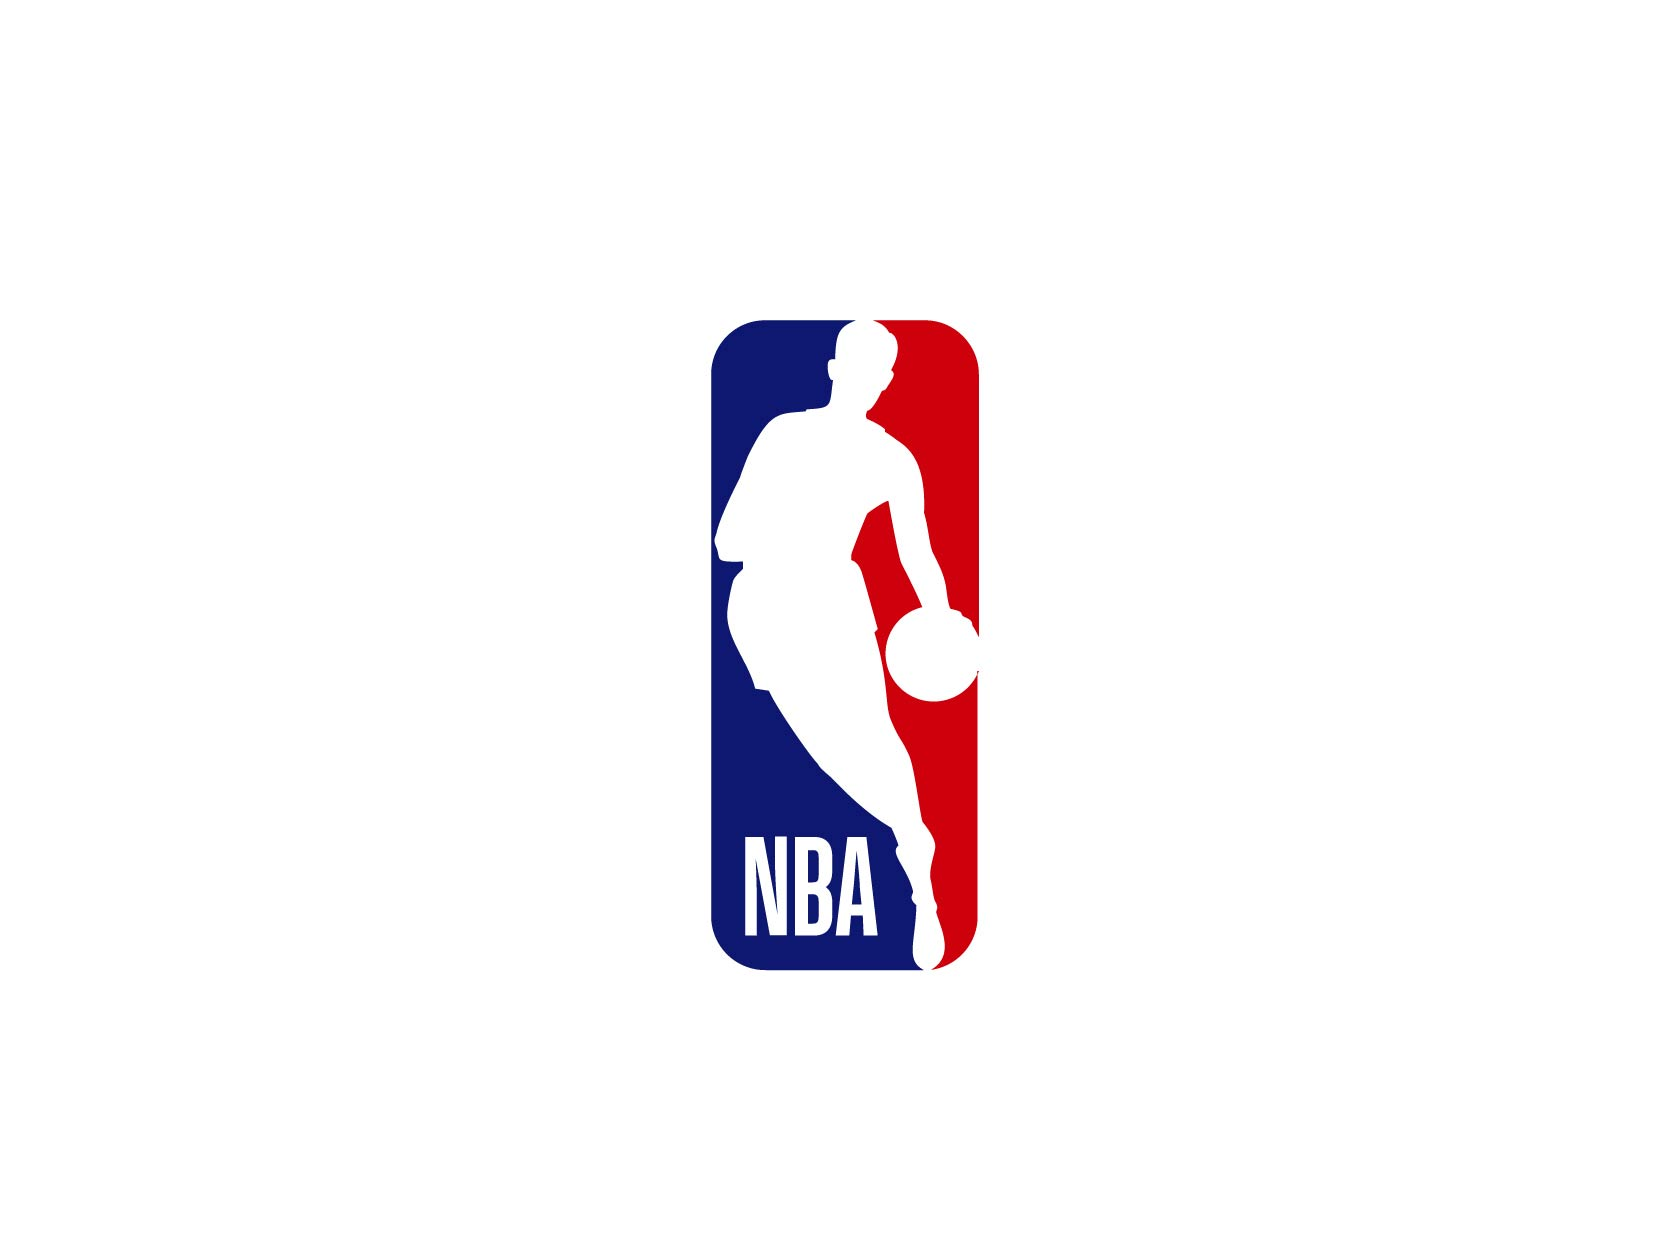 NBA viewership across TNT, ESPN and ABC up 34%